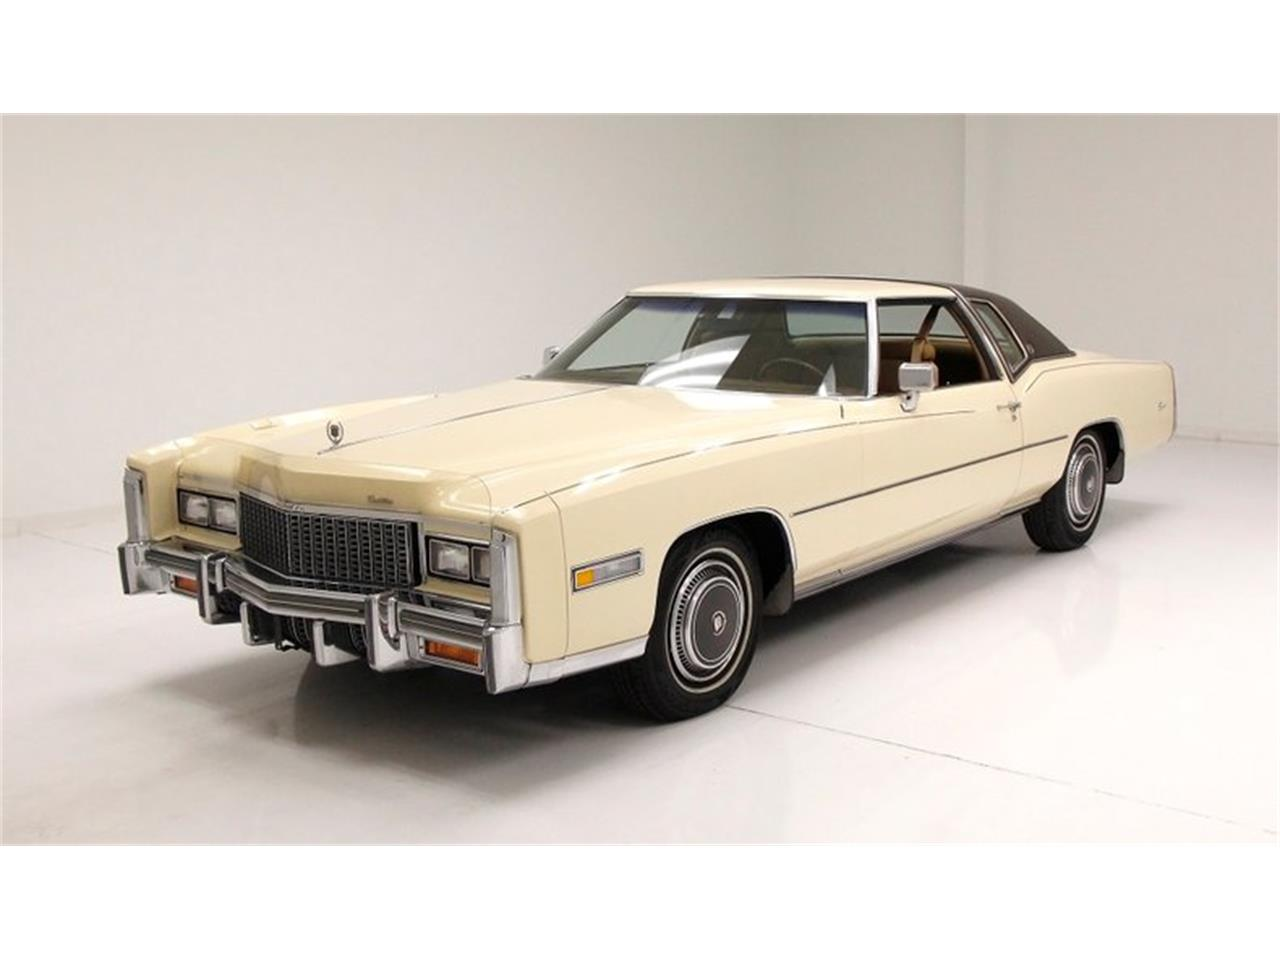 1976 Cadillac Eldorado (CC-1212554) for sale in Morgantown, Pennsylvania